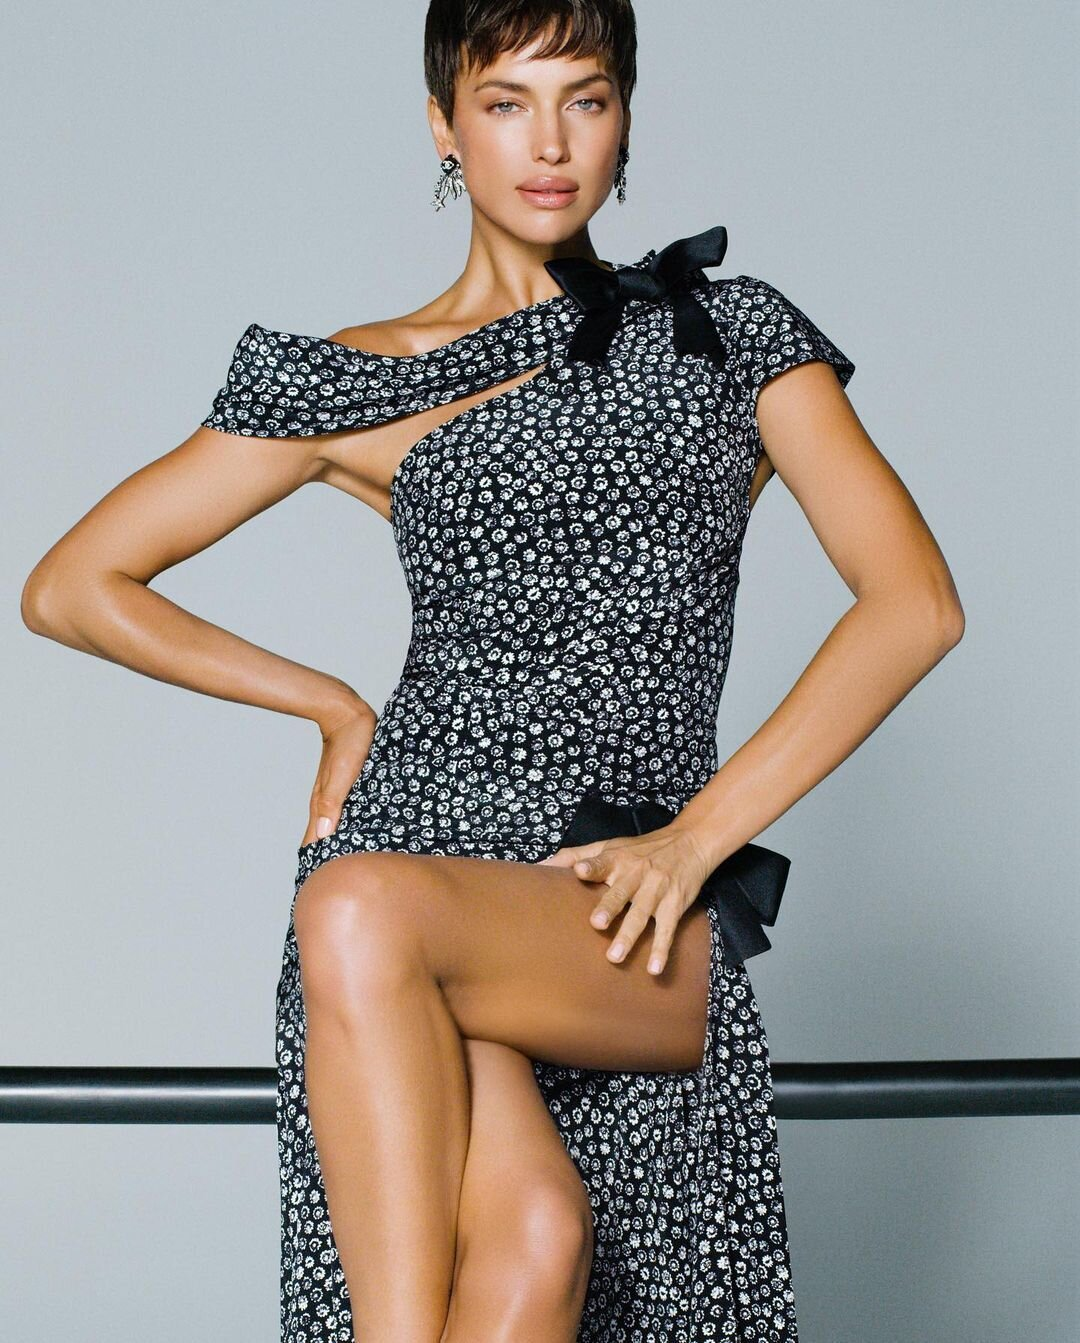 Irina Shayk Sizzles in Sensual Chanel Elegance by the Morelli Brothers for Vogue Thailand — Anne of Carversville